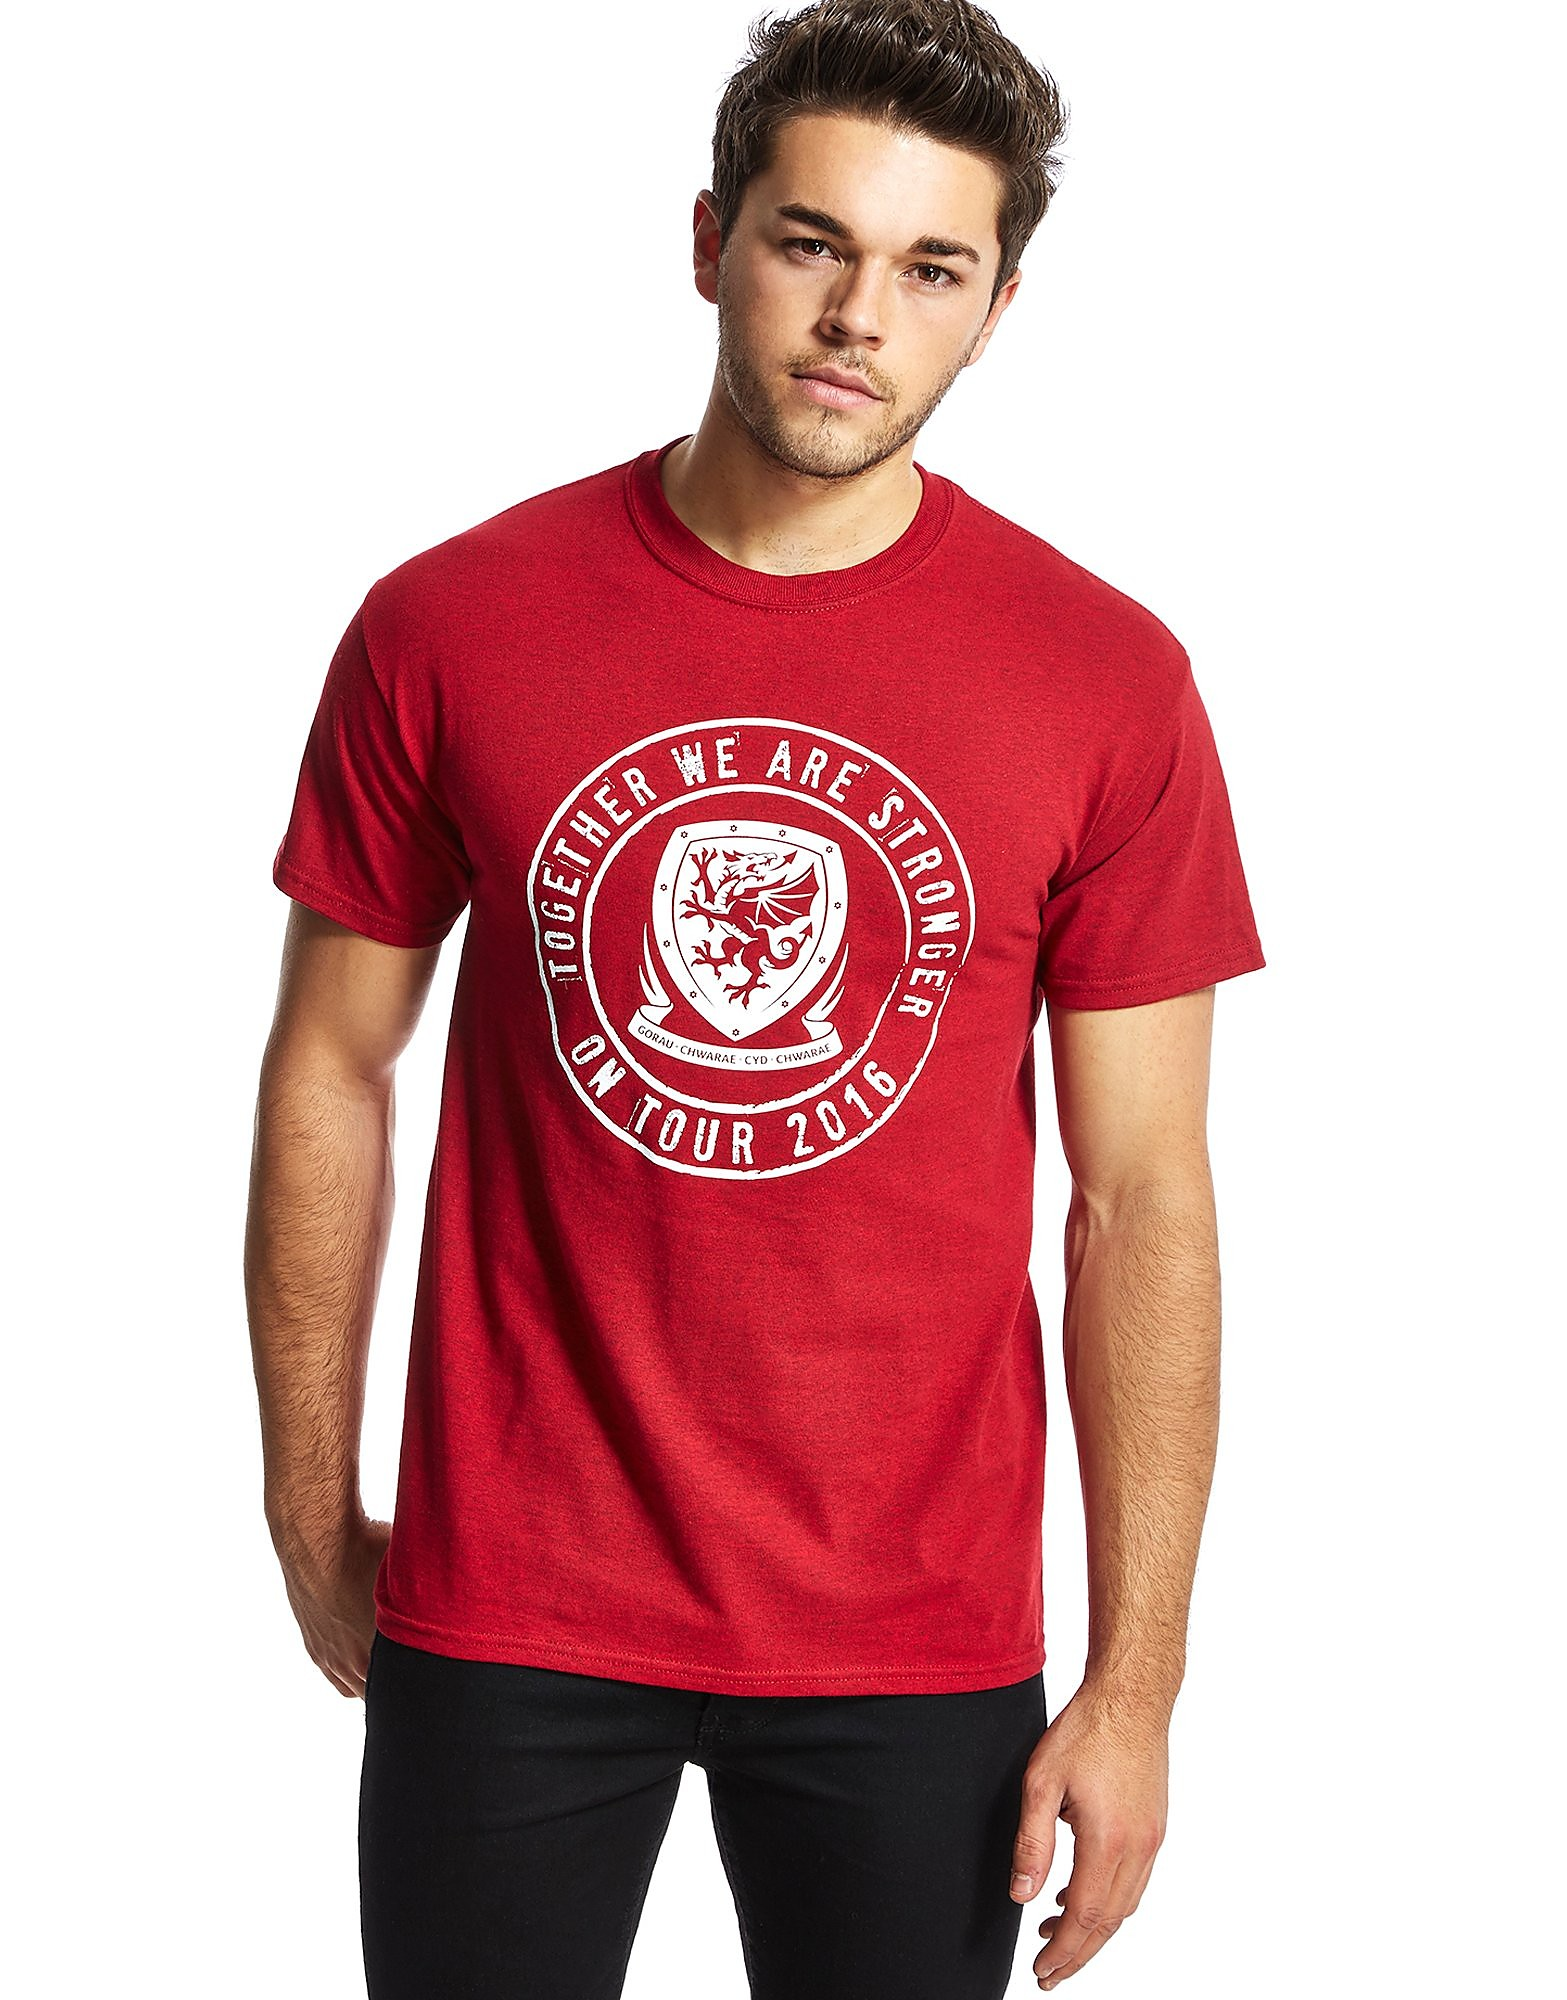 Official Team Wales Together We Are Stronger T-Shirt